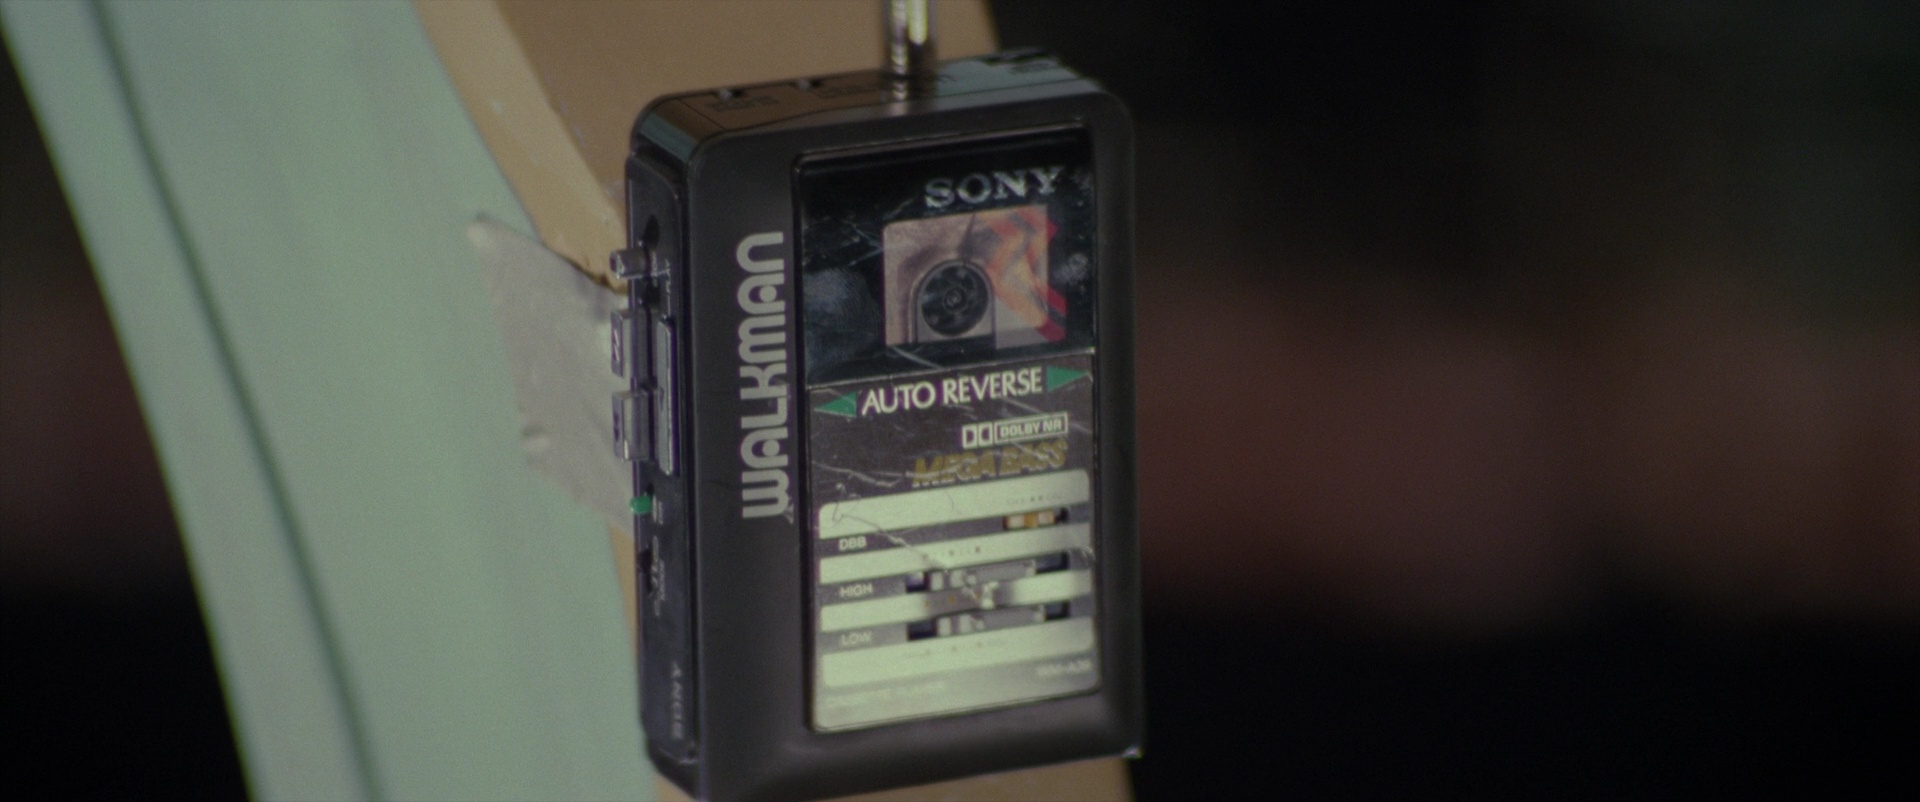 Sony Walkman Cassette Player in Ghostbusters II (1989) Movie